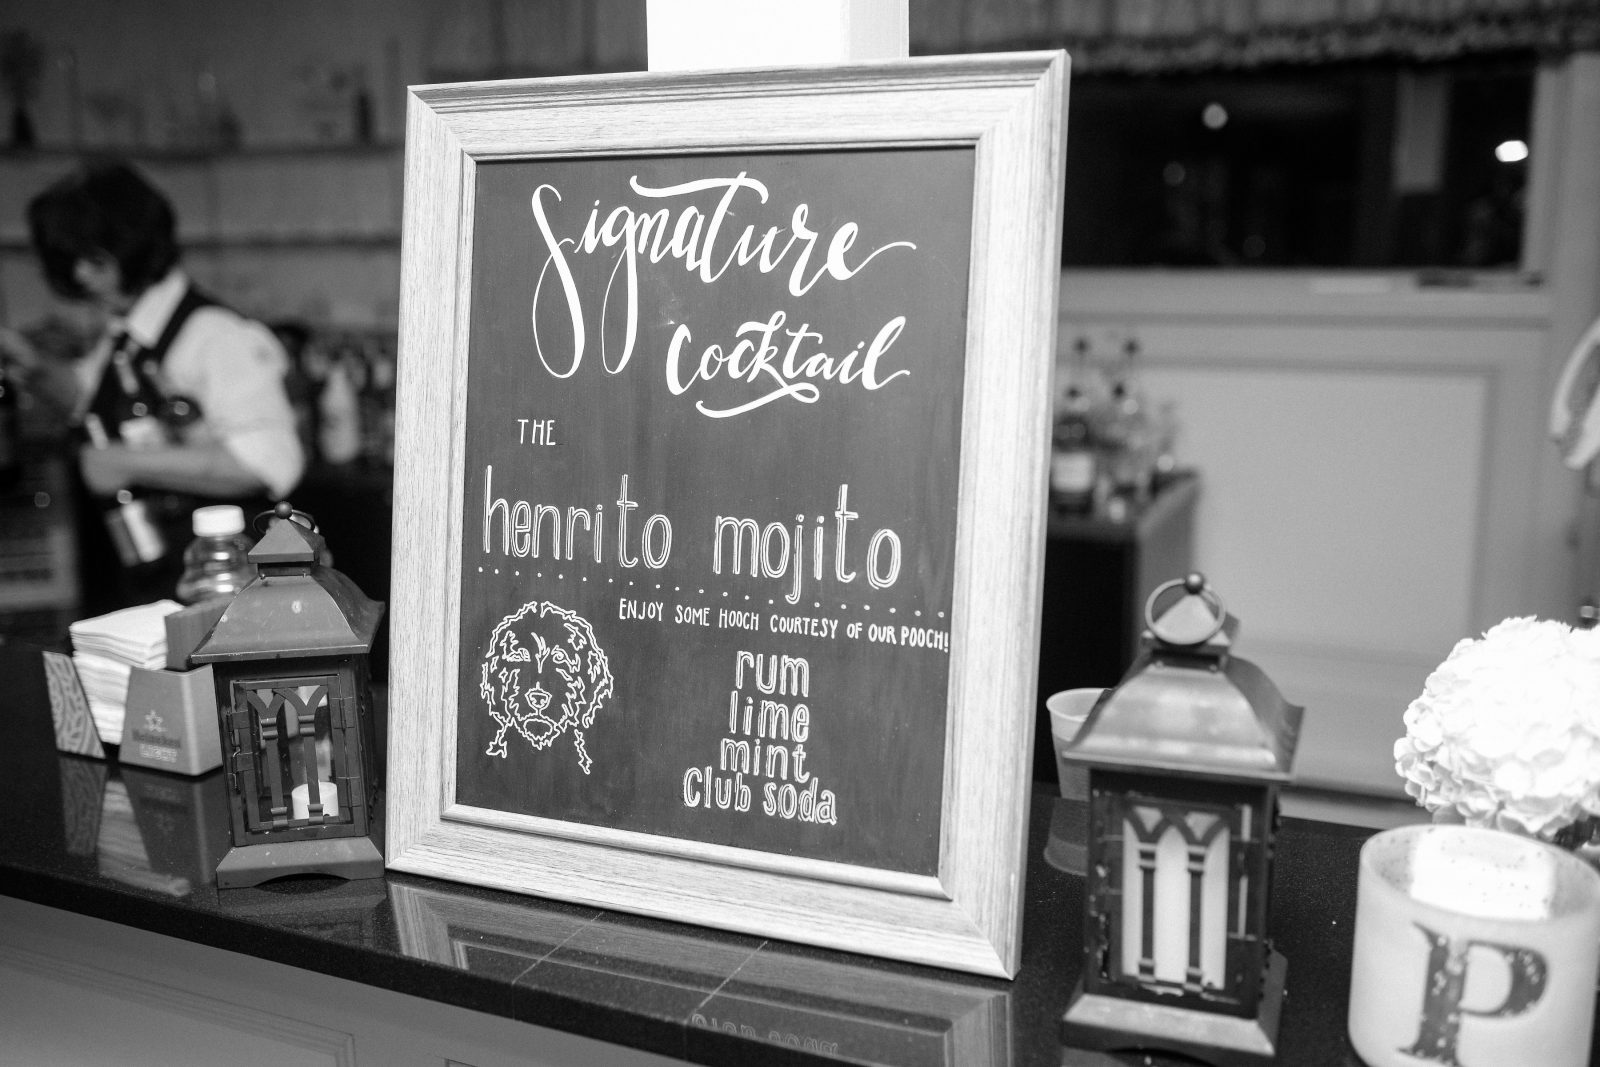 Henrito Mojito wedding signature cocktail chalkboard sign by La Luna by Sierra featuring hooch courtesy of the couples pooch. Photo by Christian Gideon Photography